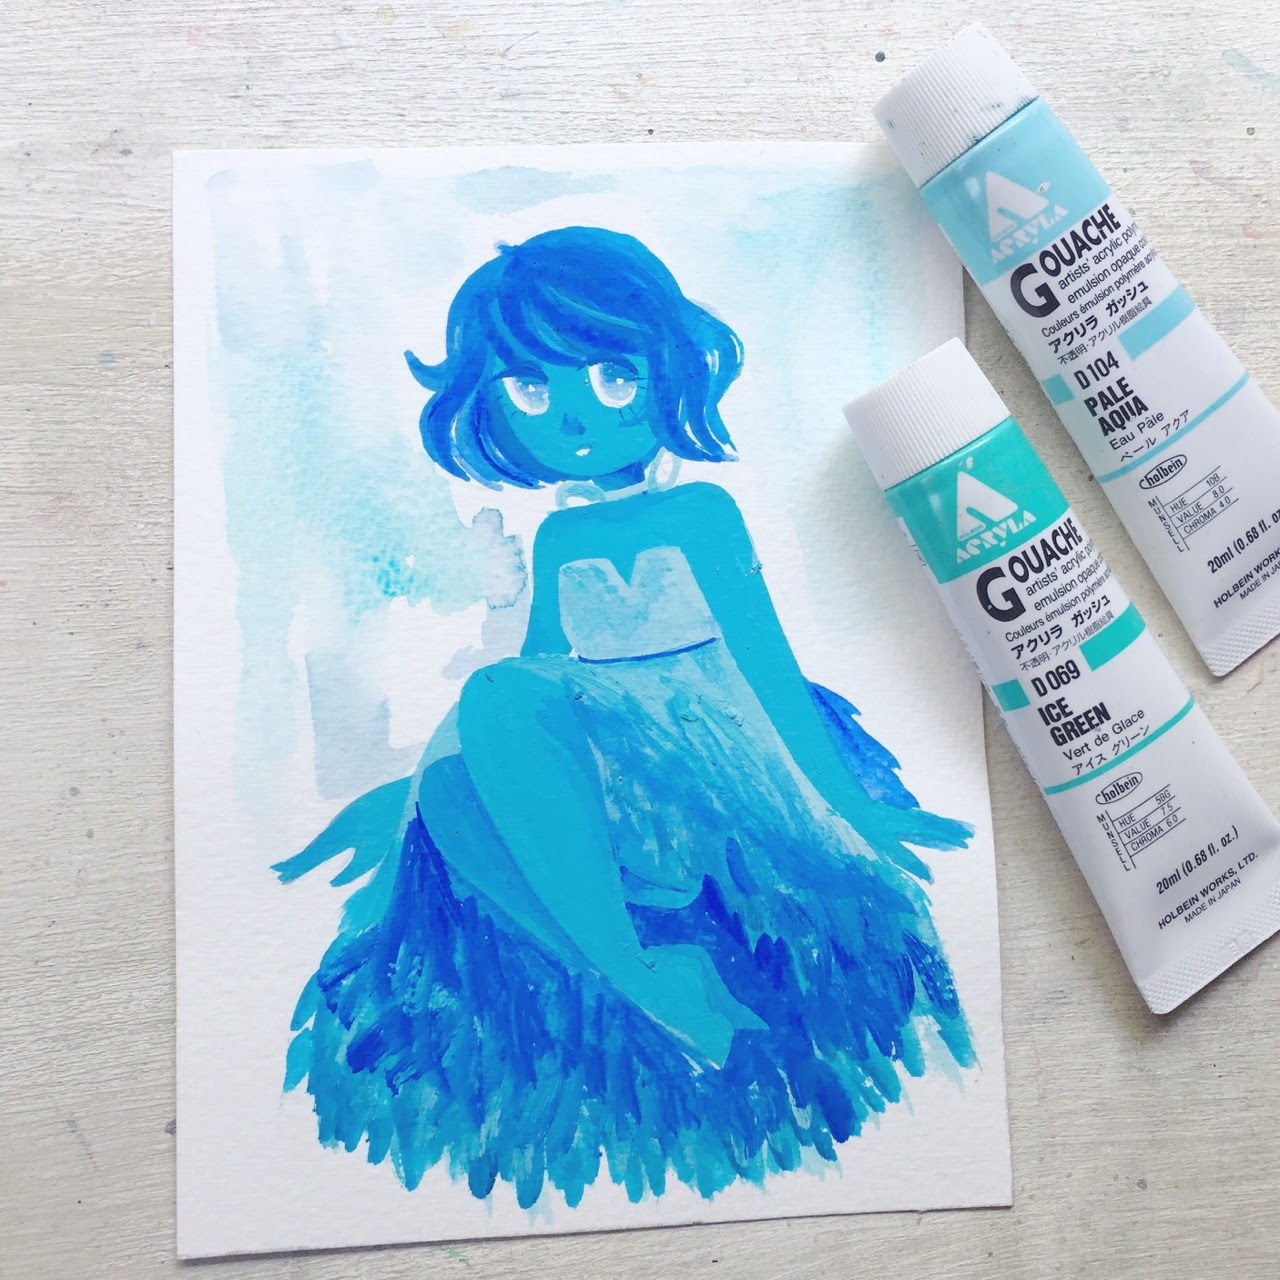 Lapis doodle from a couple weeks ago. I found it underneath some books.